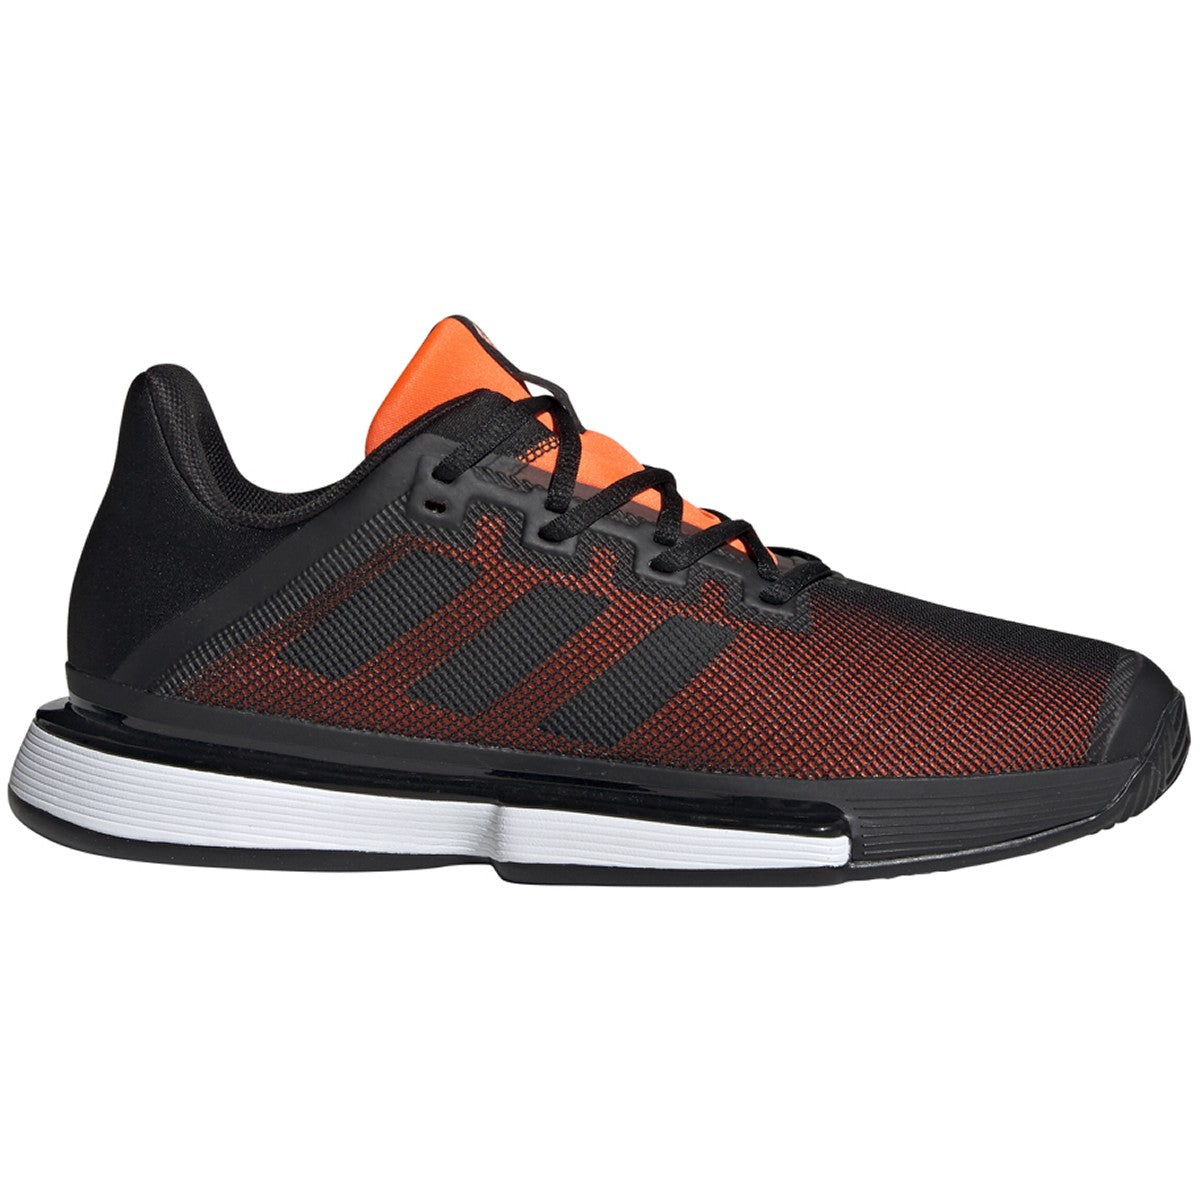 Adidas Mens Solematch Bounce Blk/Orange